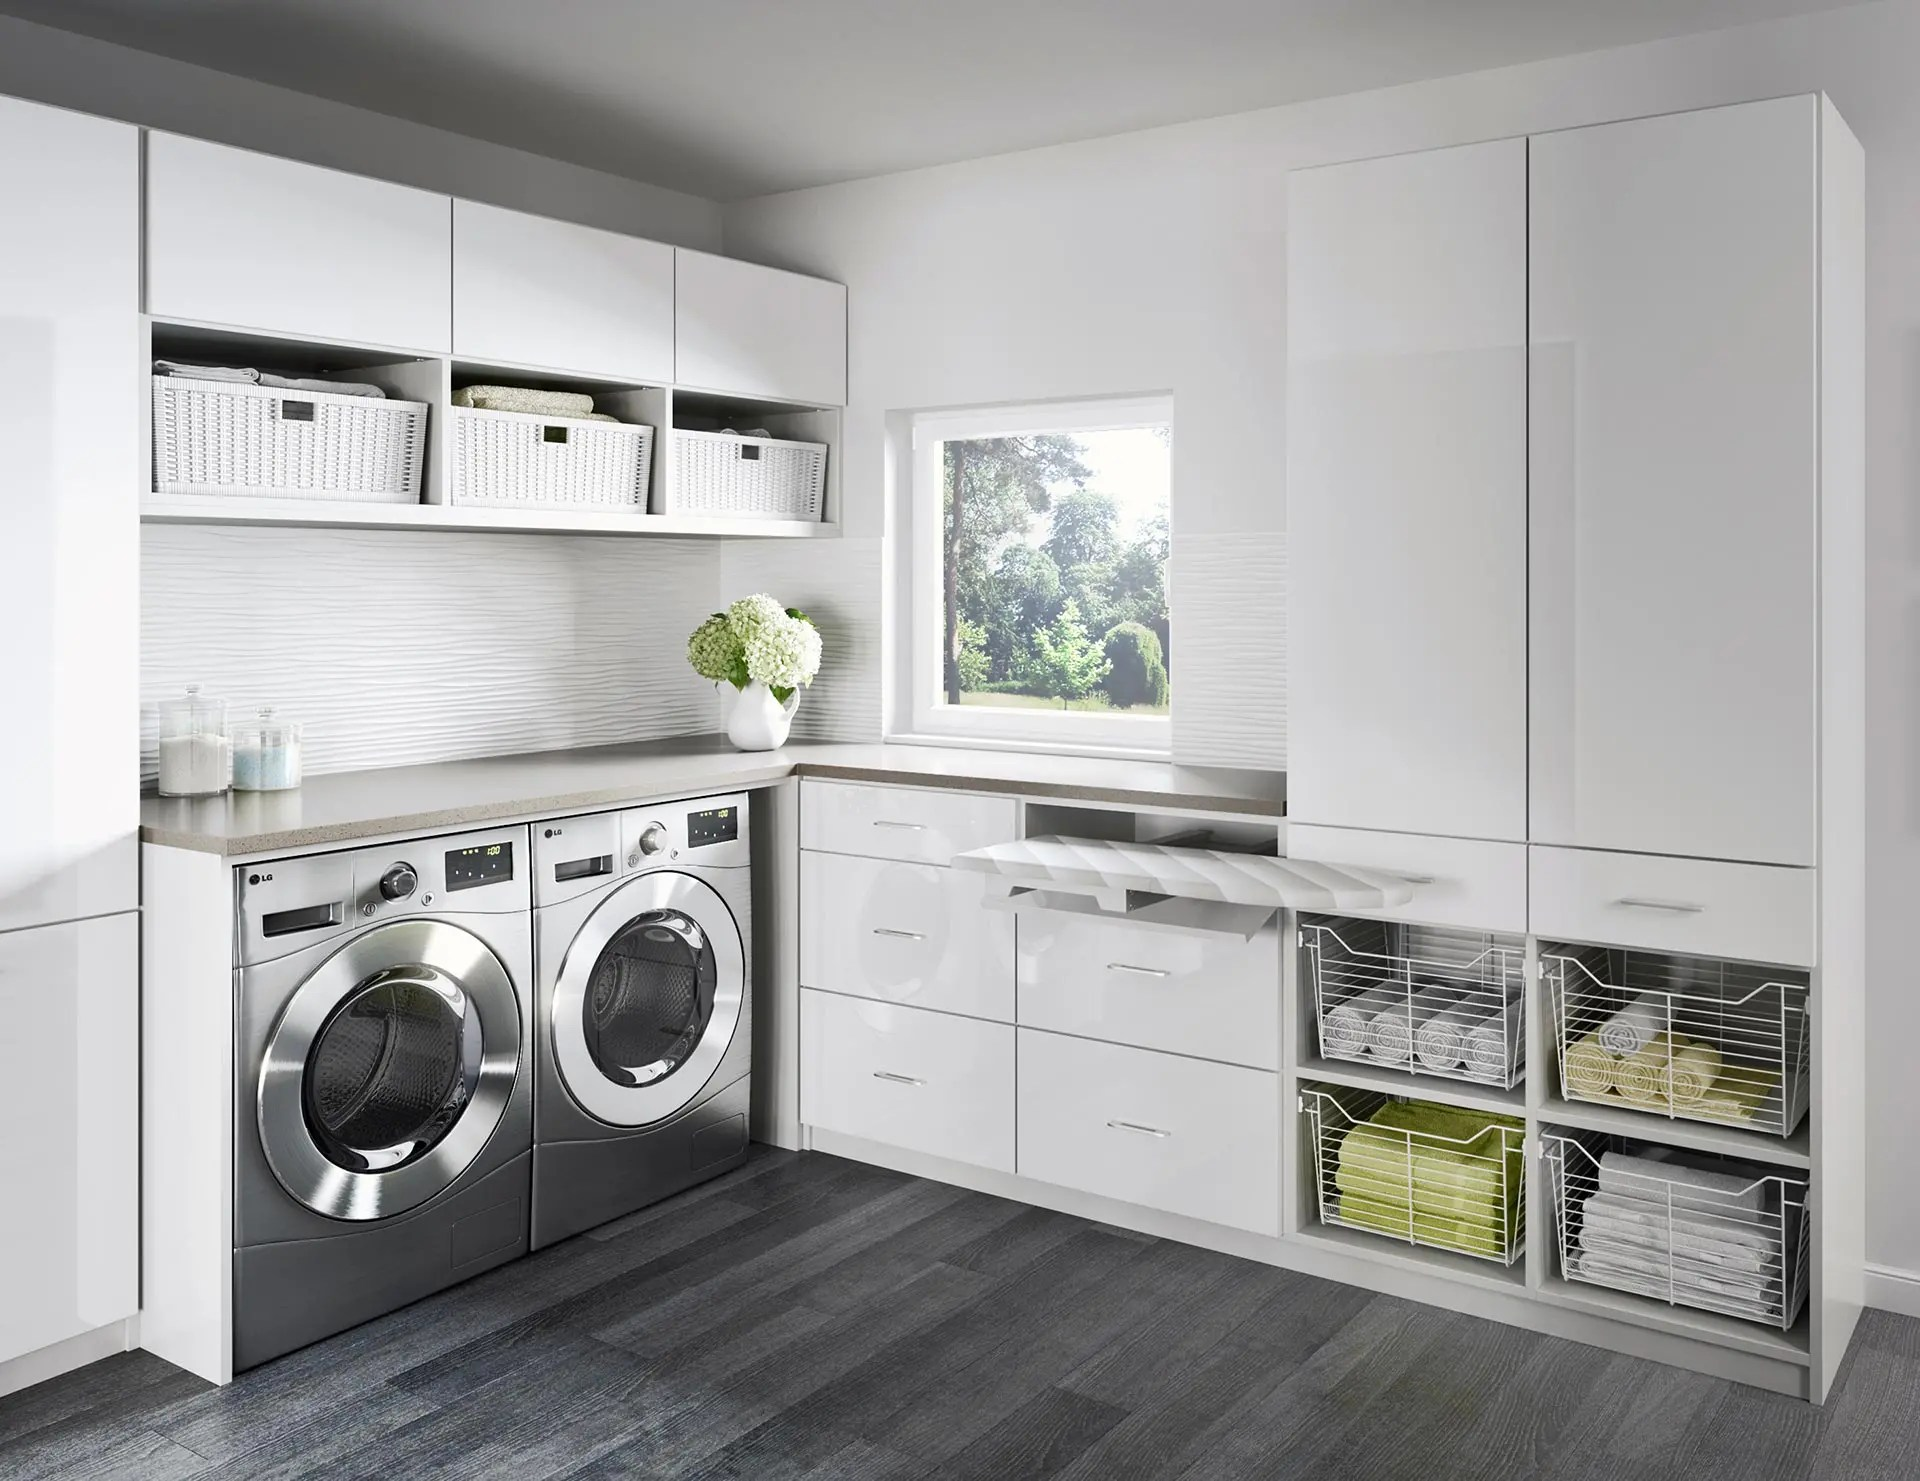 Laundry Room Cabinets & Storage Ideas by California Closets on Laundry Cabinets Ideas  id=19278